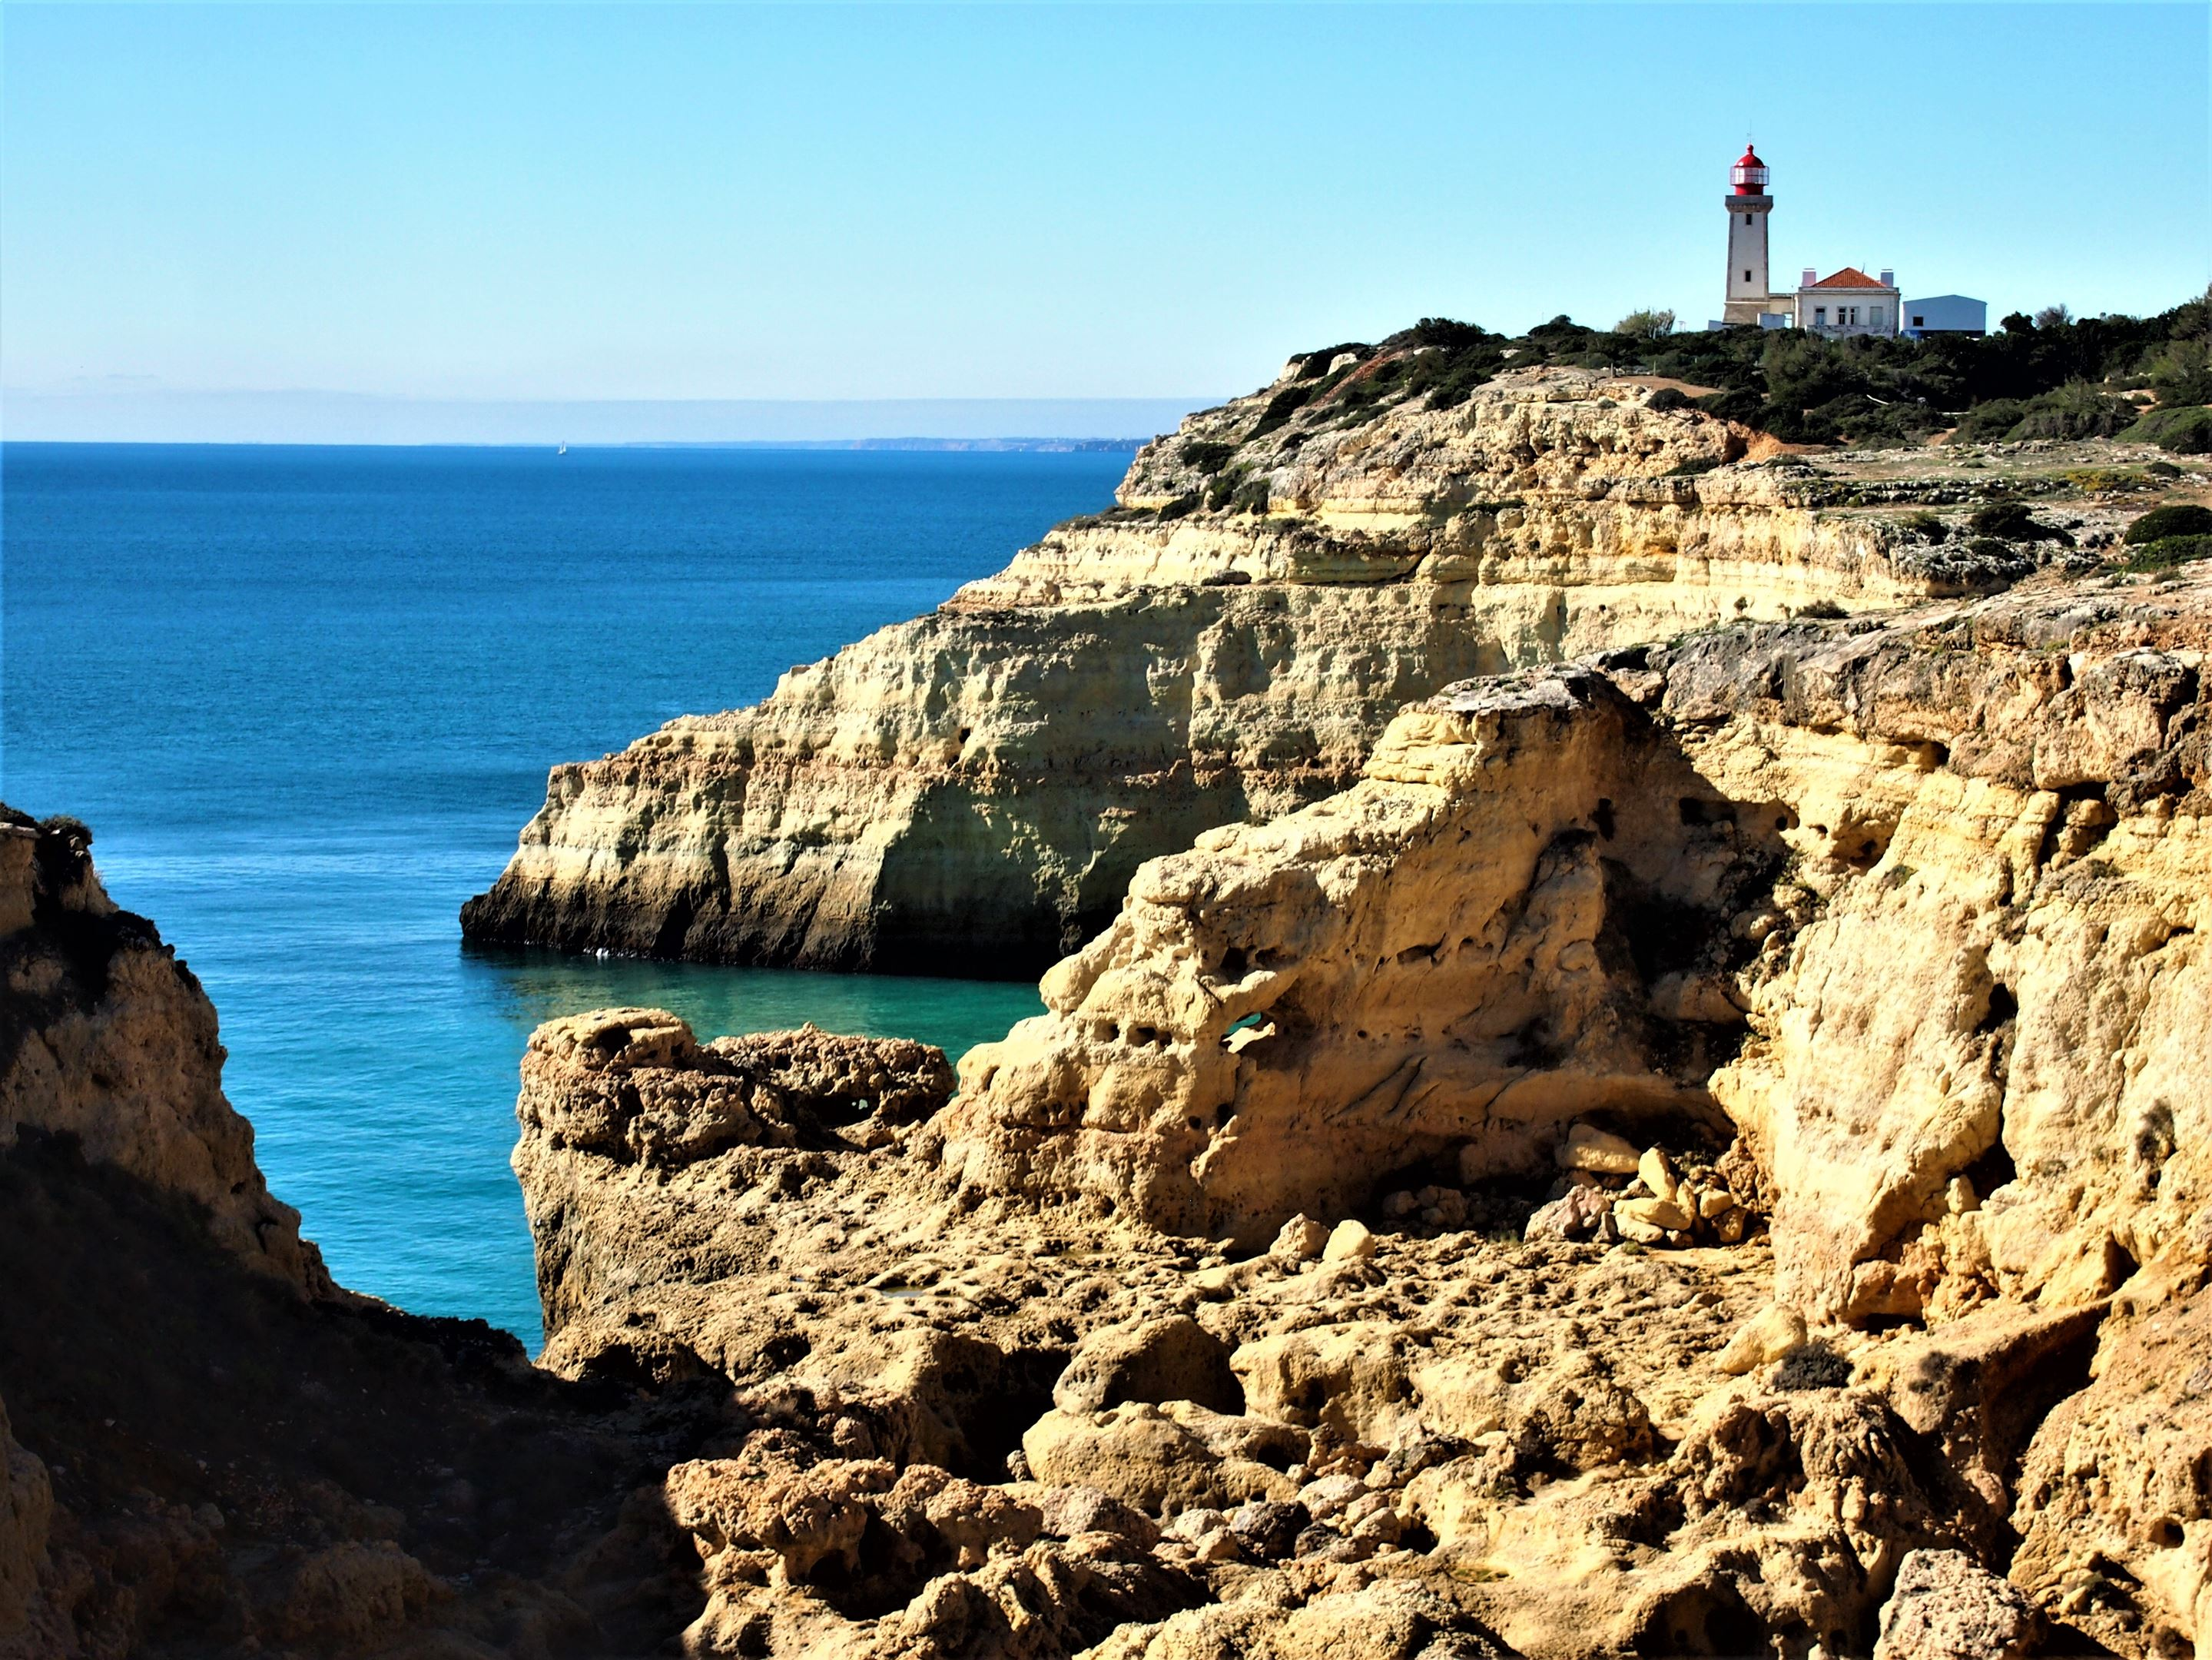 Farol de Alfanzina (lighthouse), on the cliffs near Praia do Carvalho